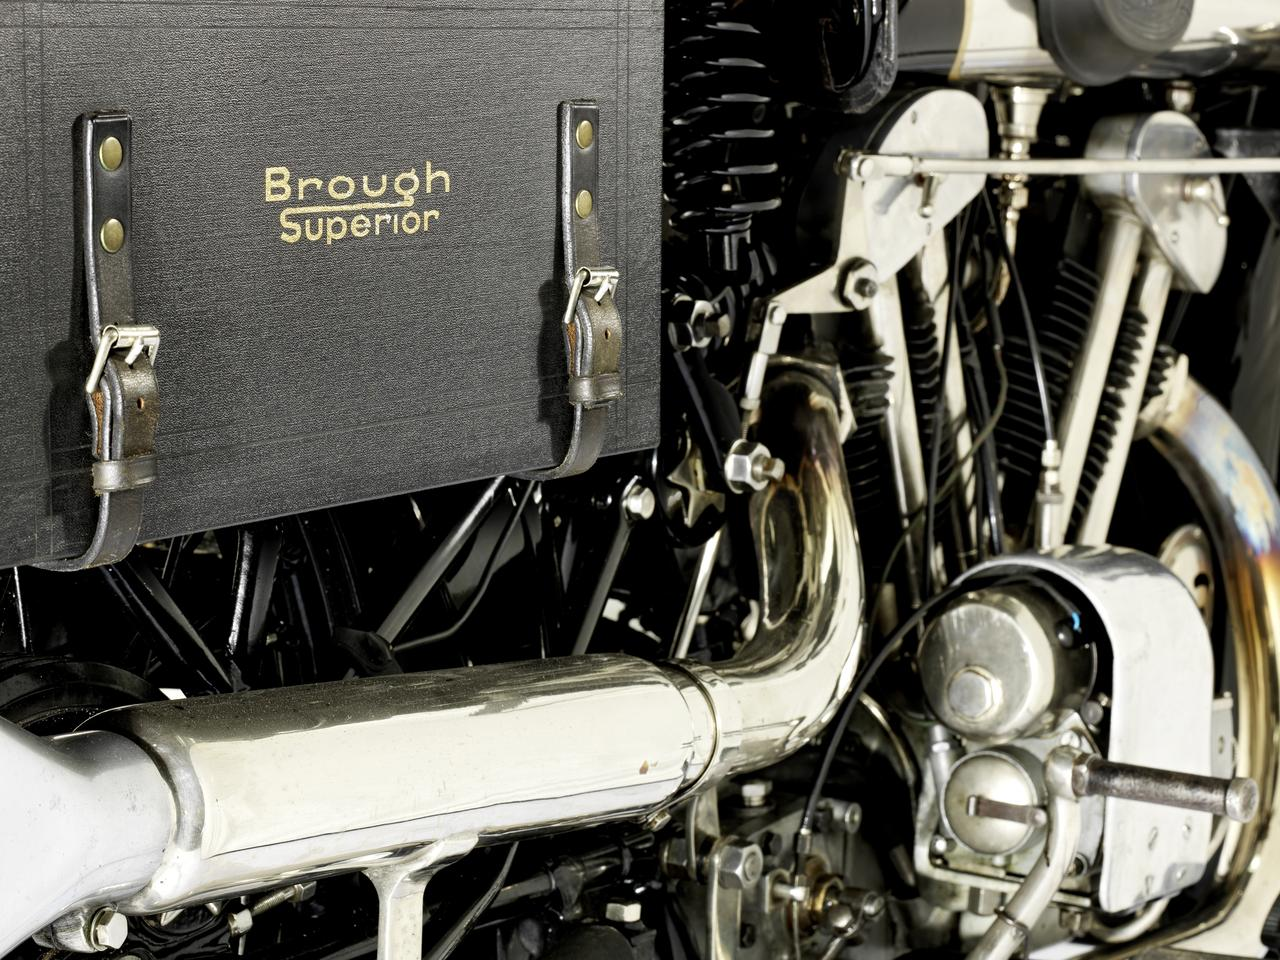 The one liter V-twins from Brough Superior and Vincent are the world's two most sought-after motorcycles - that's a fact. Now two perfect examples will cross the block on the same day. This Alpine Grand Sports Brough will most likely become one of the top ten most expensive motorcycles.